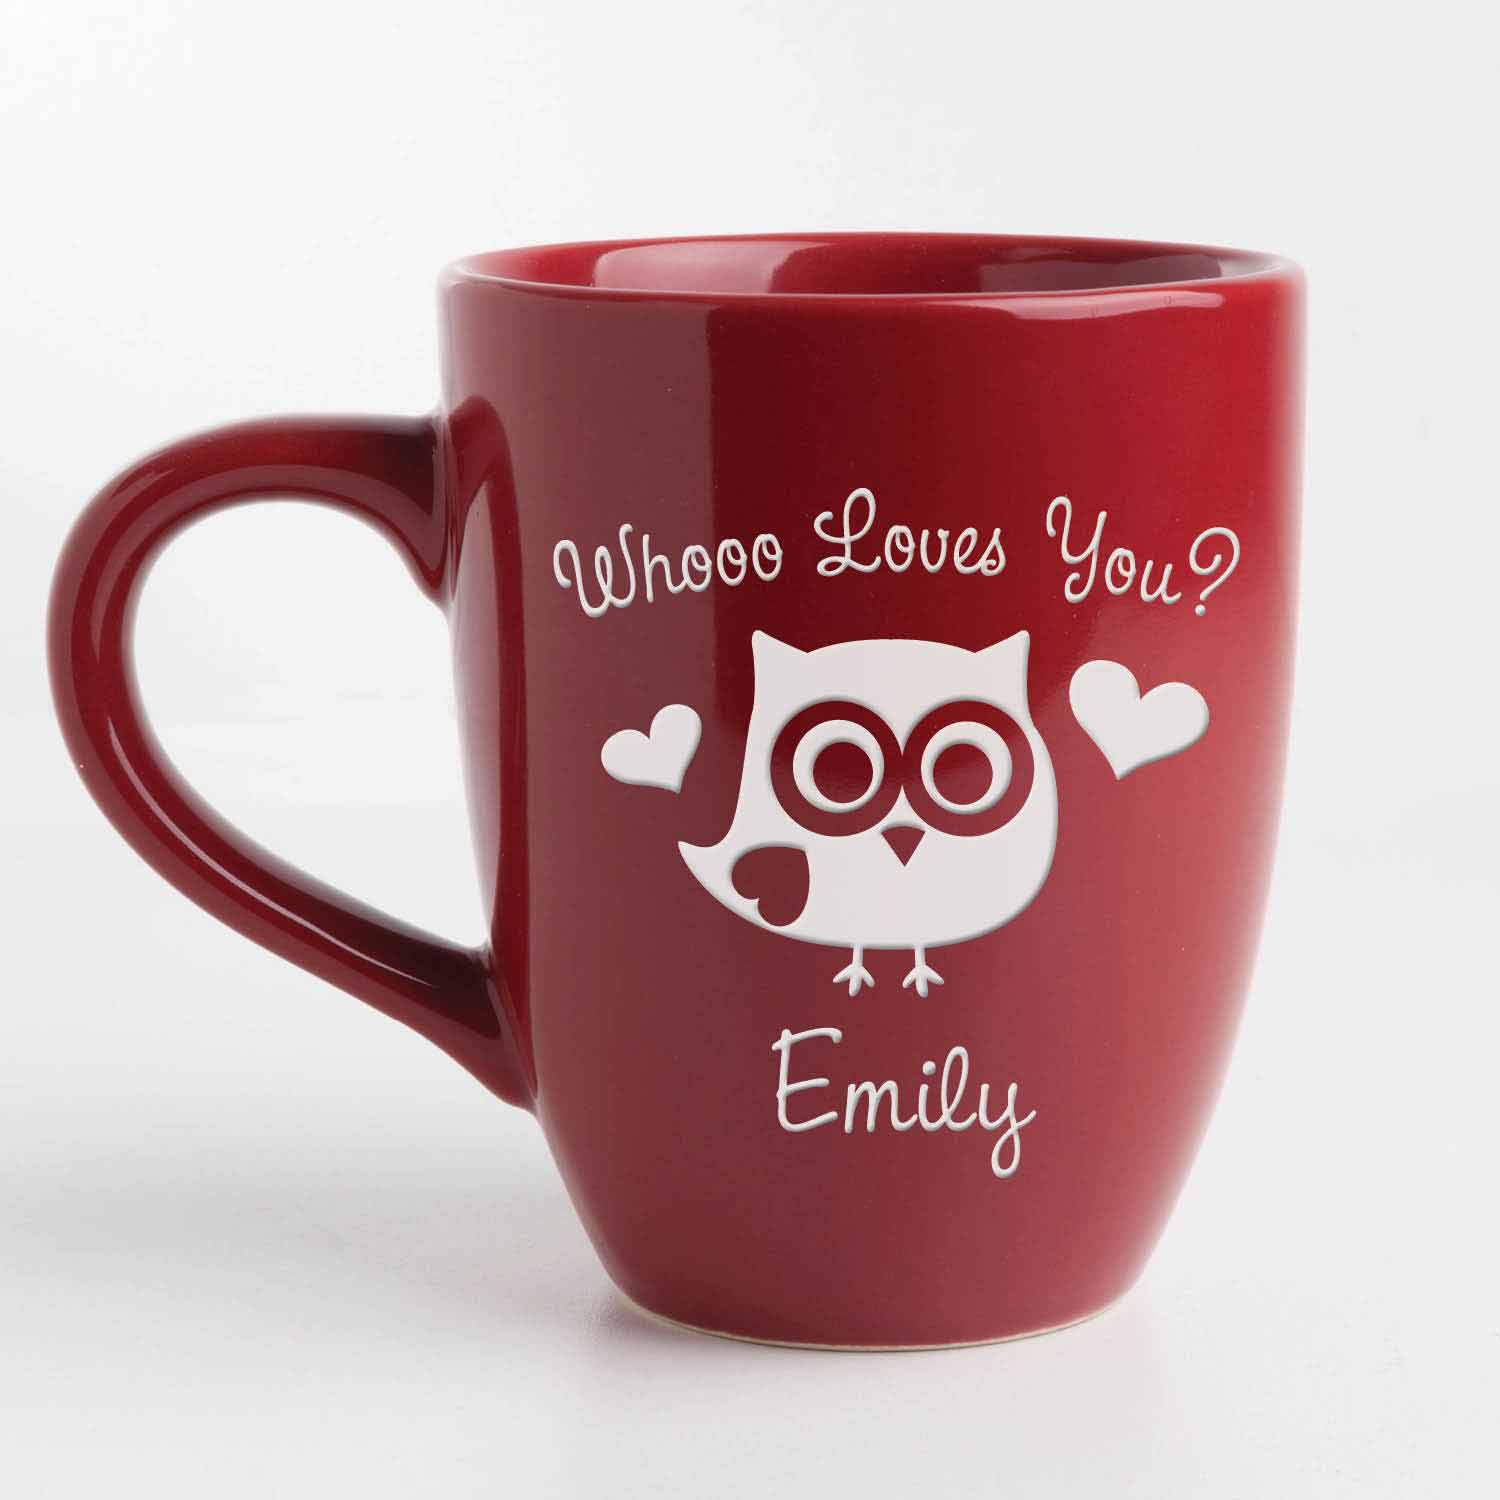 Personalized Whooo Loves You? Red Bistro 14.5 oz Coffee Mug